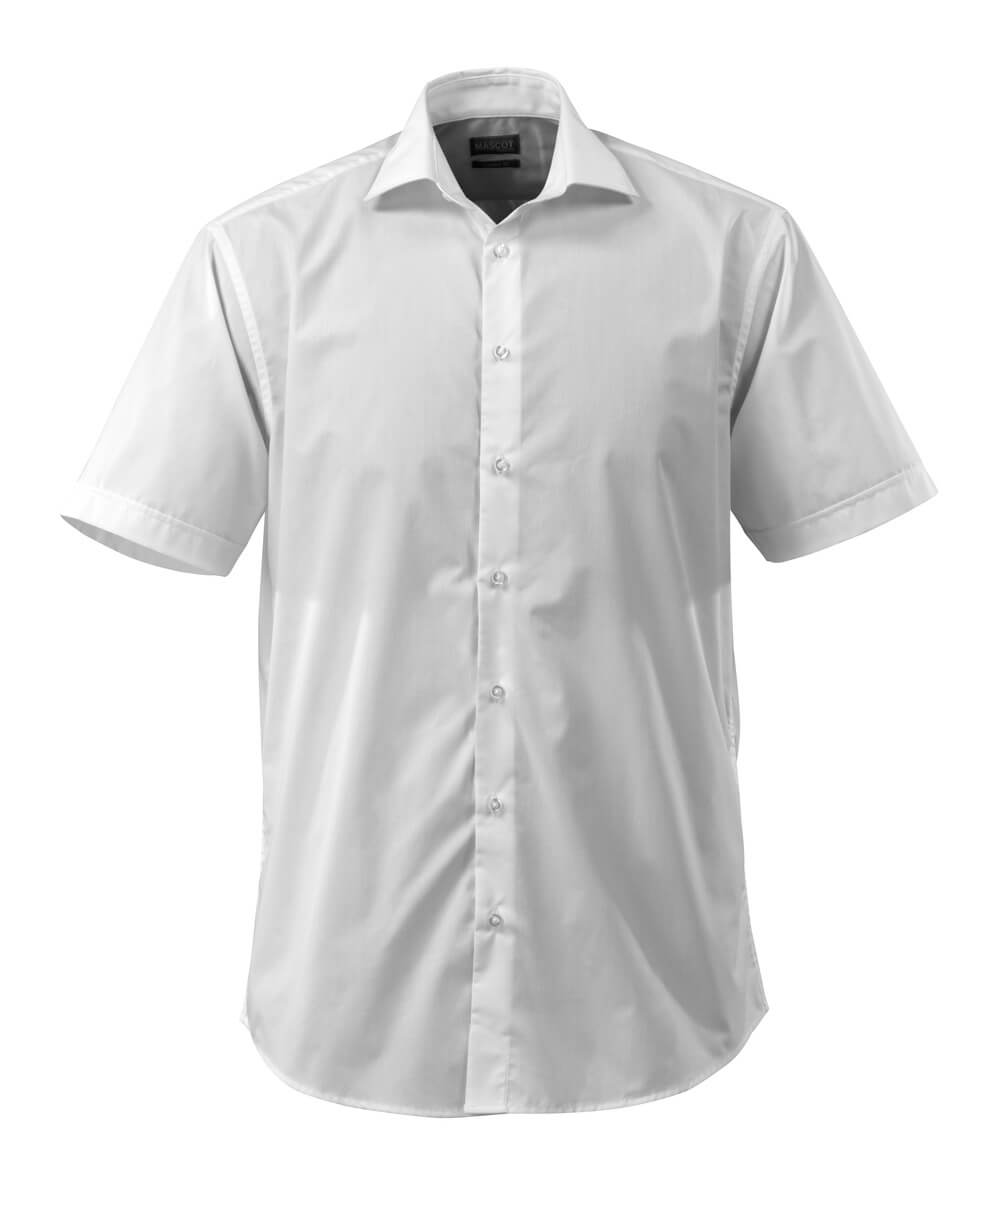 50632-984-06 Shirt, short-sleeved - white